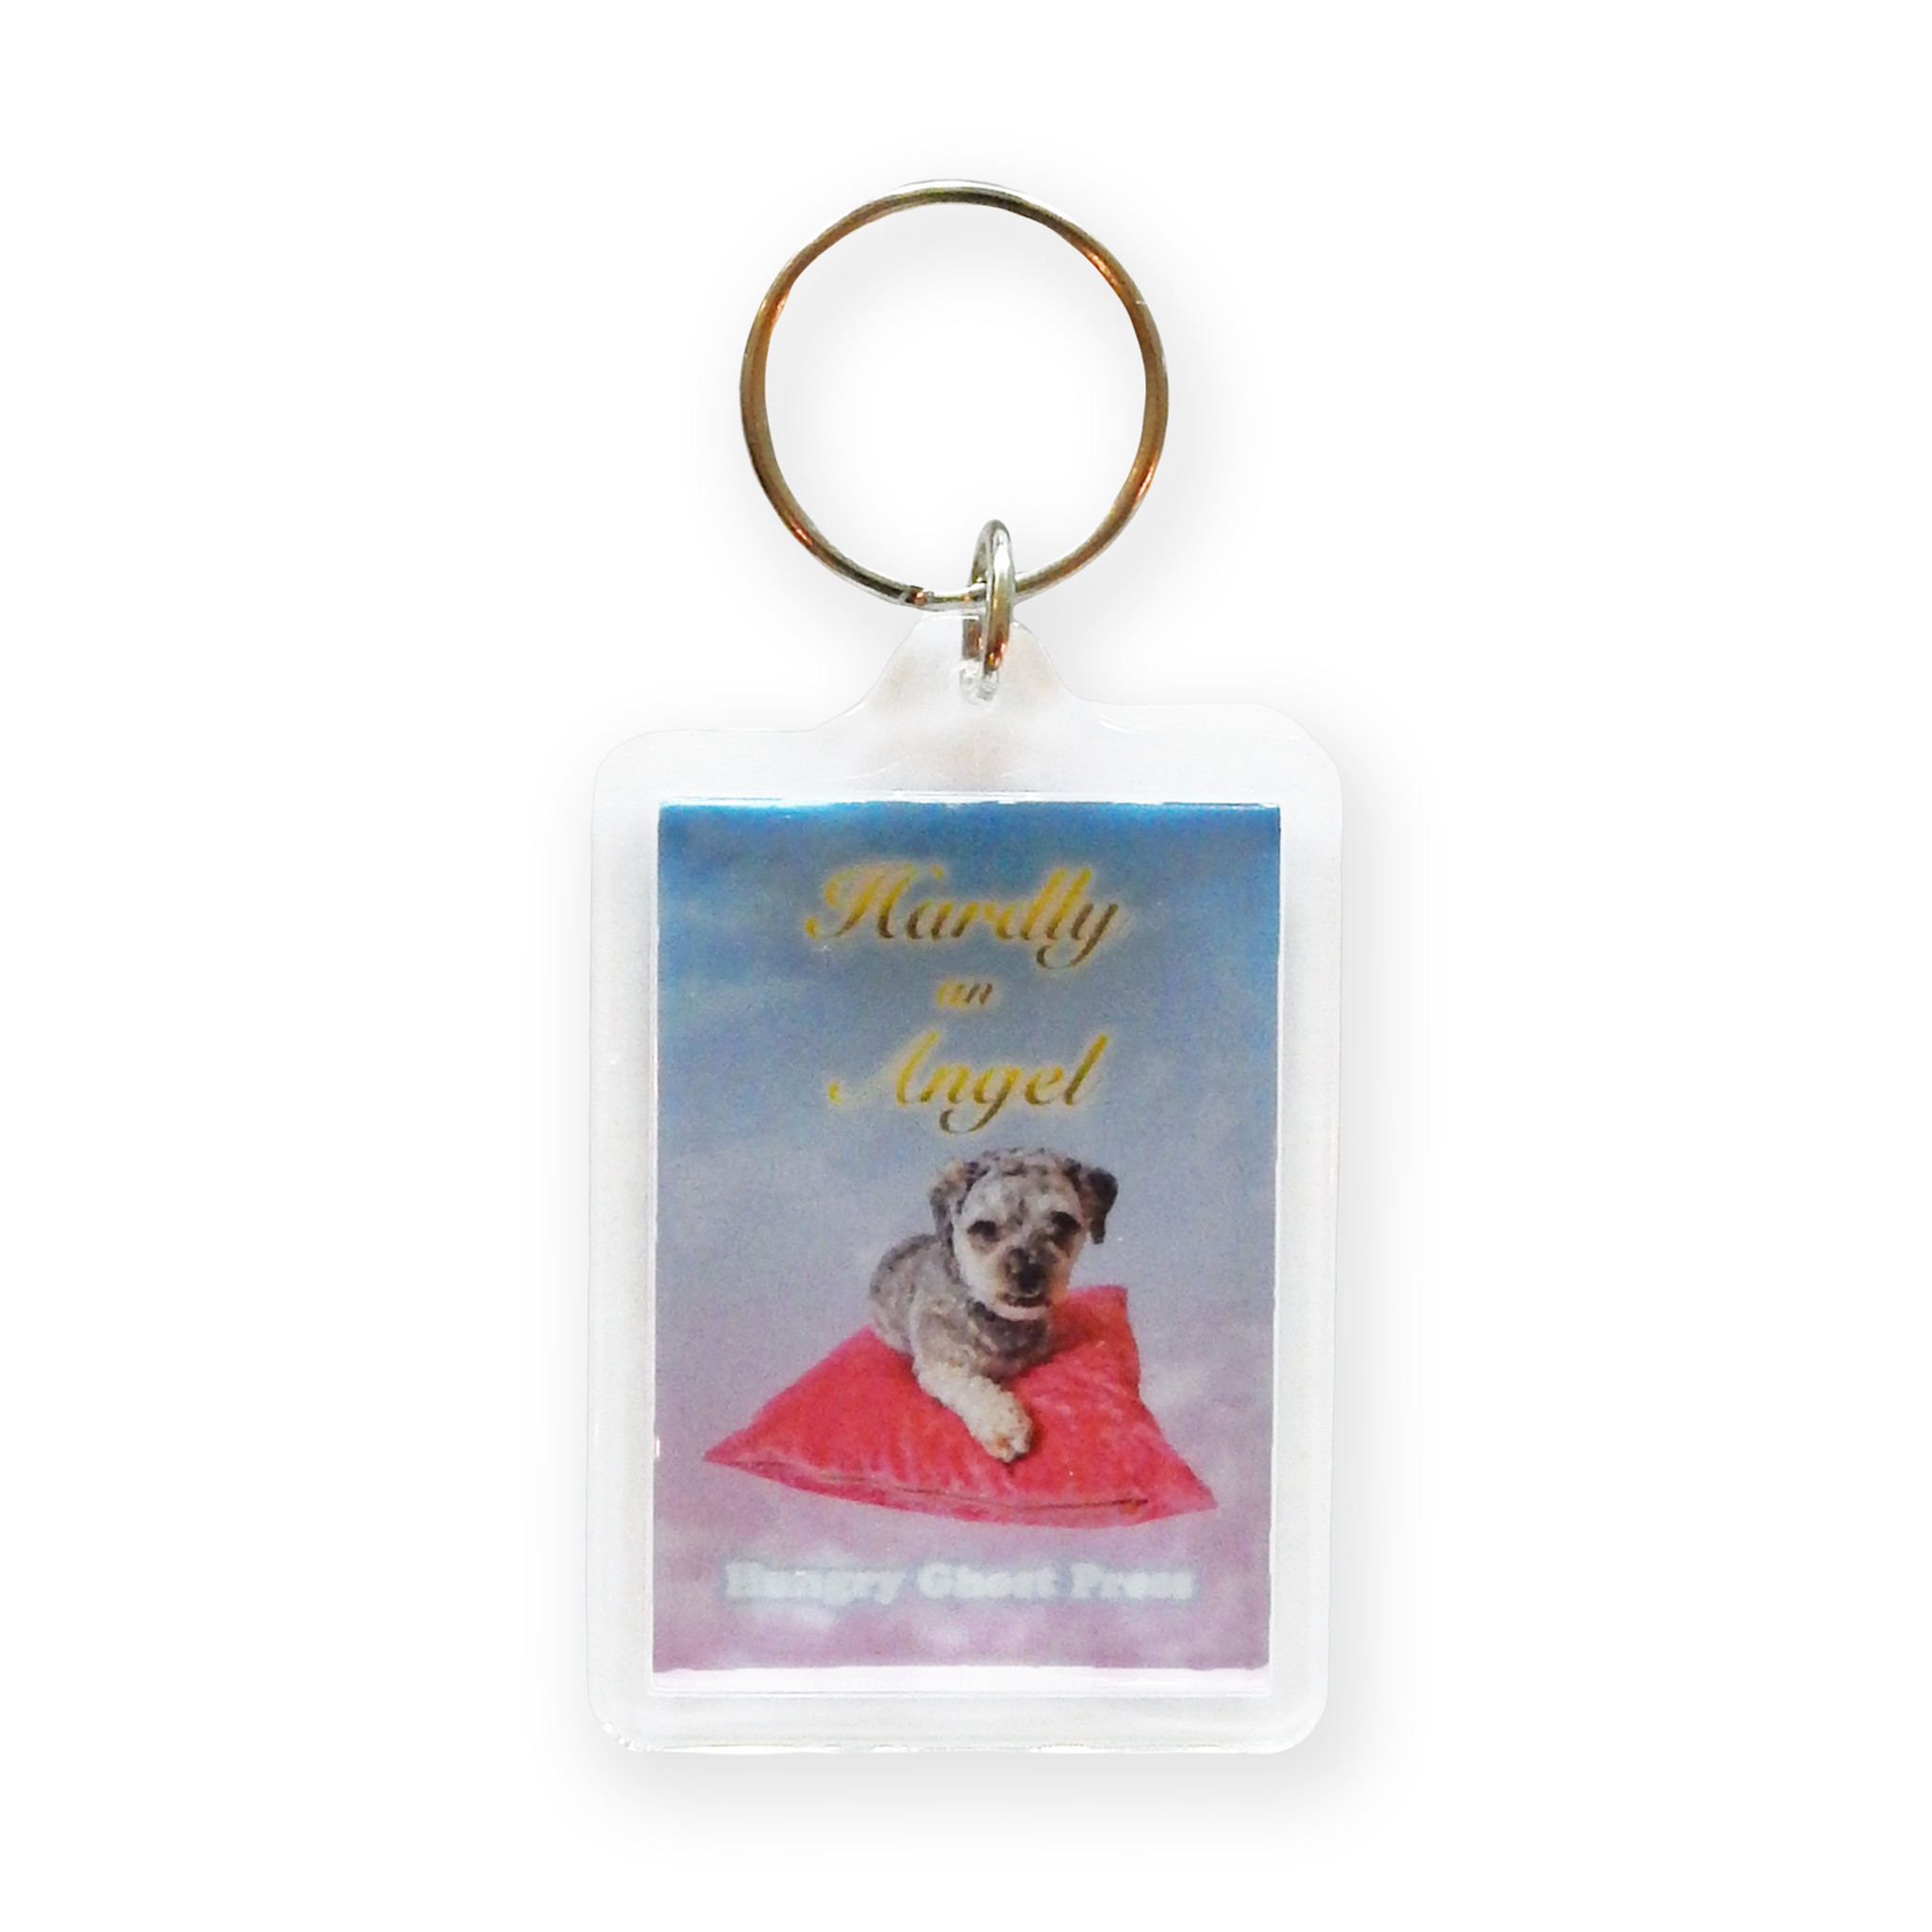 A Keychain for an Angel